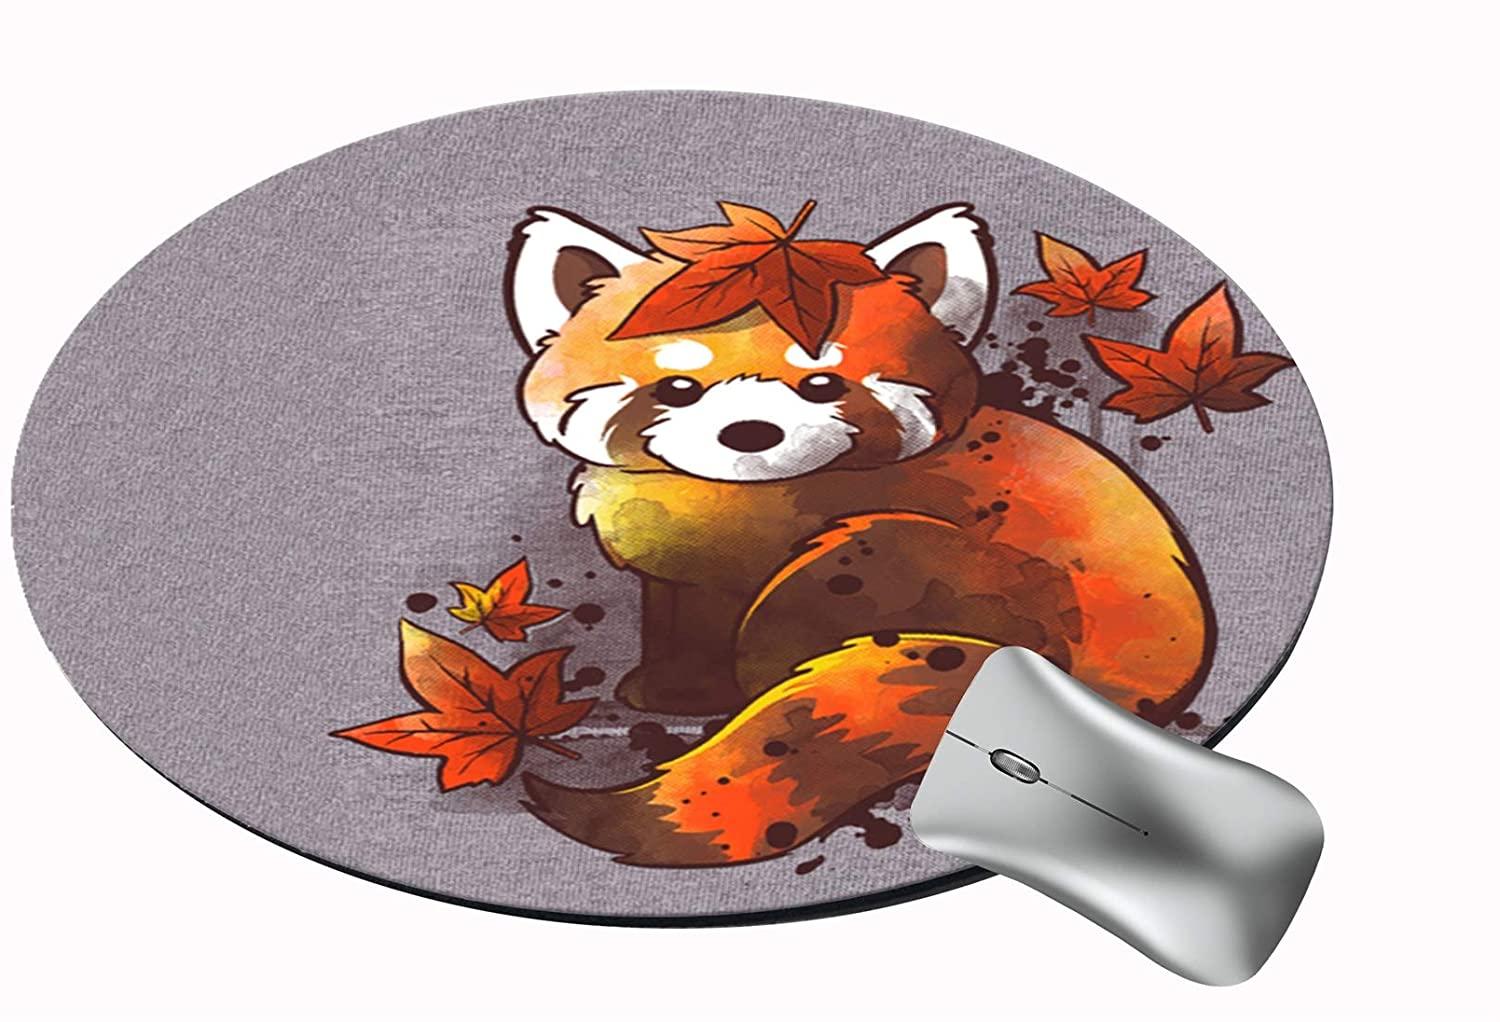 FQJNS Customized Round Office Mouse Pad Non-Slip Rubber Mouse Pads Cute Mat (Red Panda red Leaves)